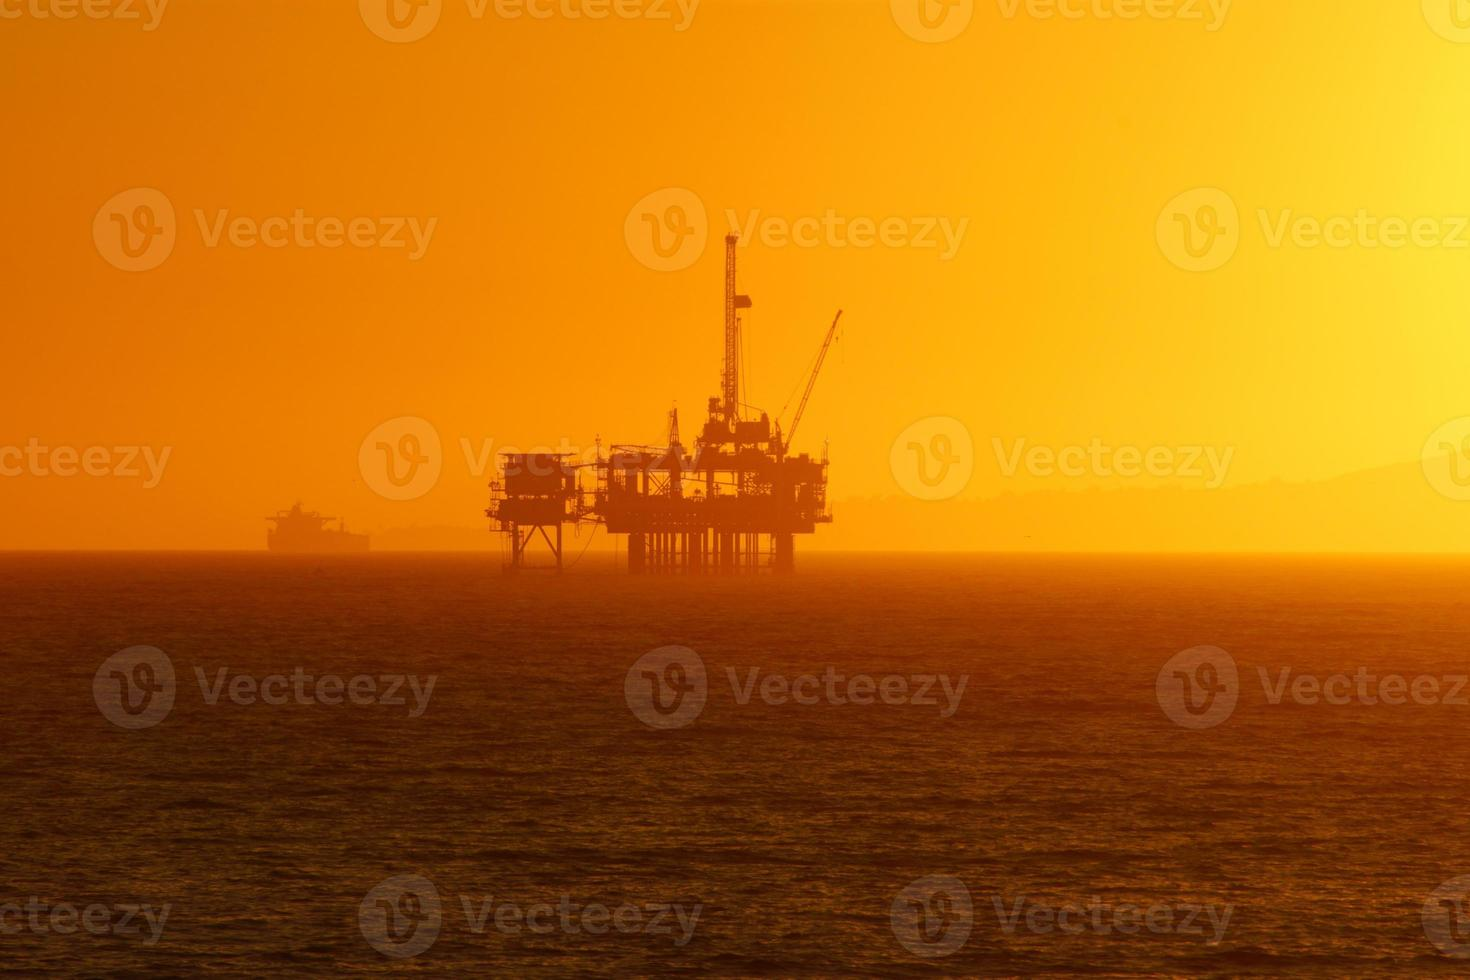 Beach Oil Rig at Sunset photo